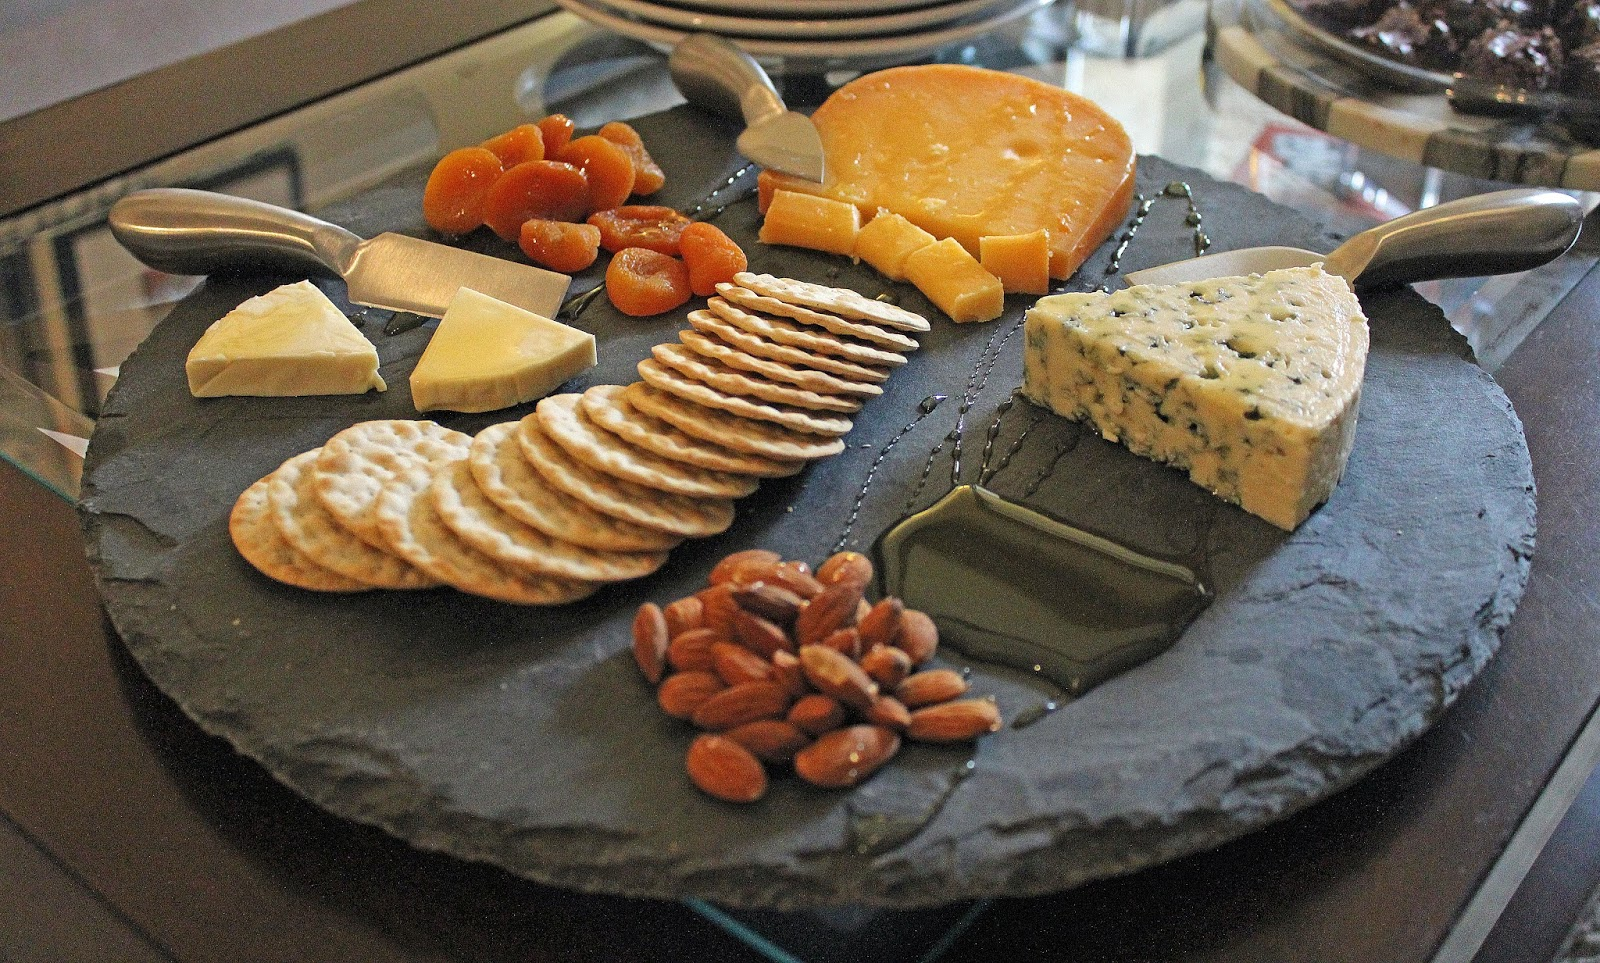 secondly pick your cheeses and crackers. be sure to get at least one type of cheese that everyone will like such as smoked gouda or even a white cheddar. & perfecting your cheese plate